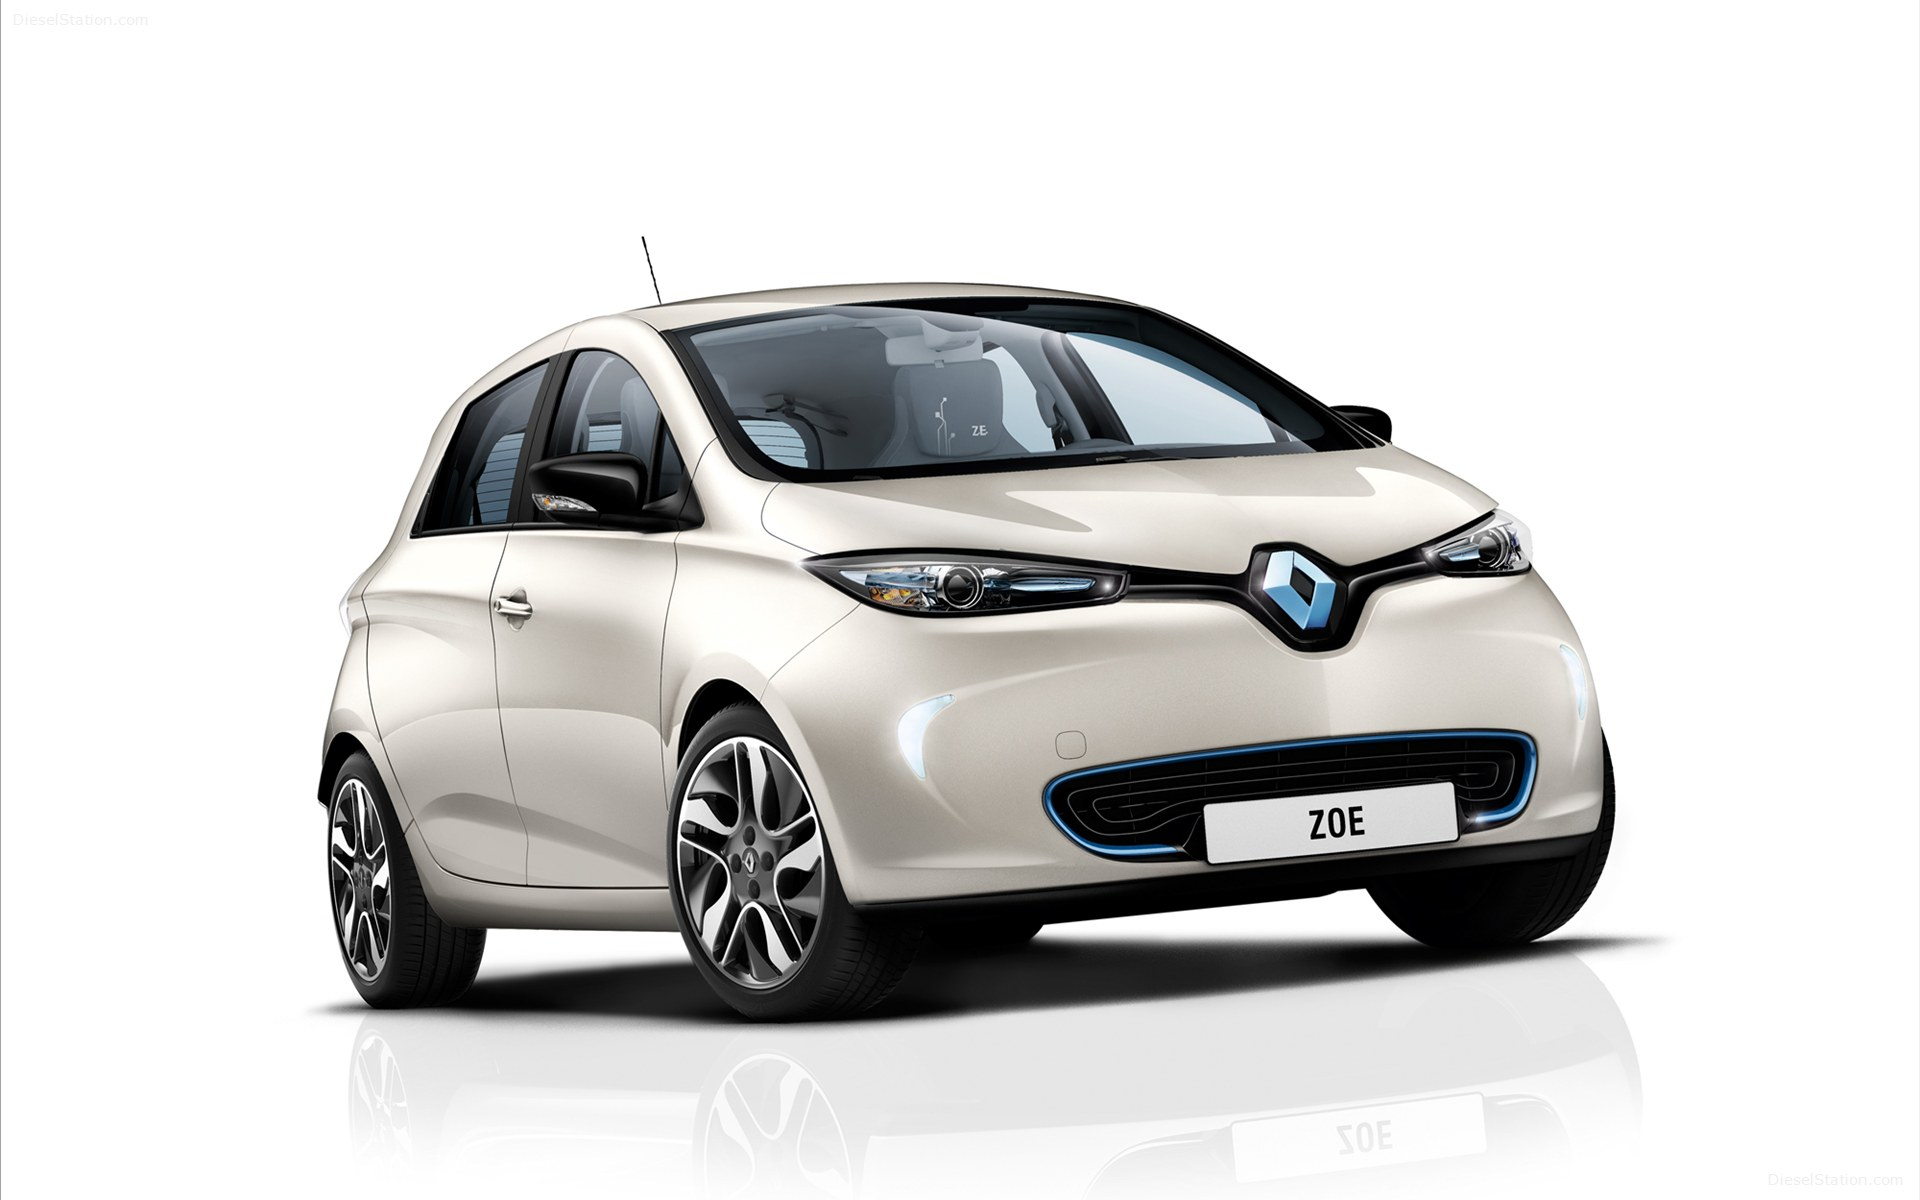 2013 Renault Zoe Hatchback 5-door